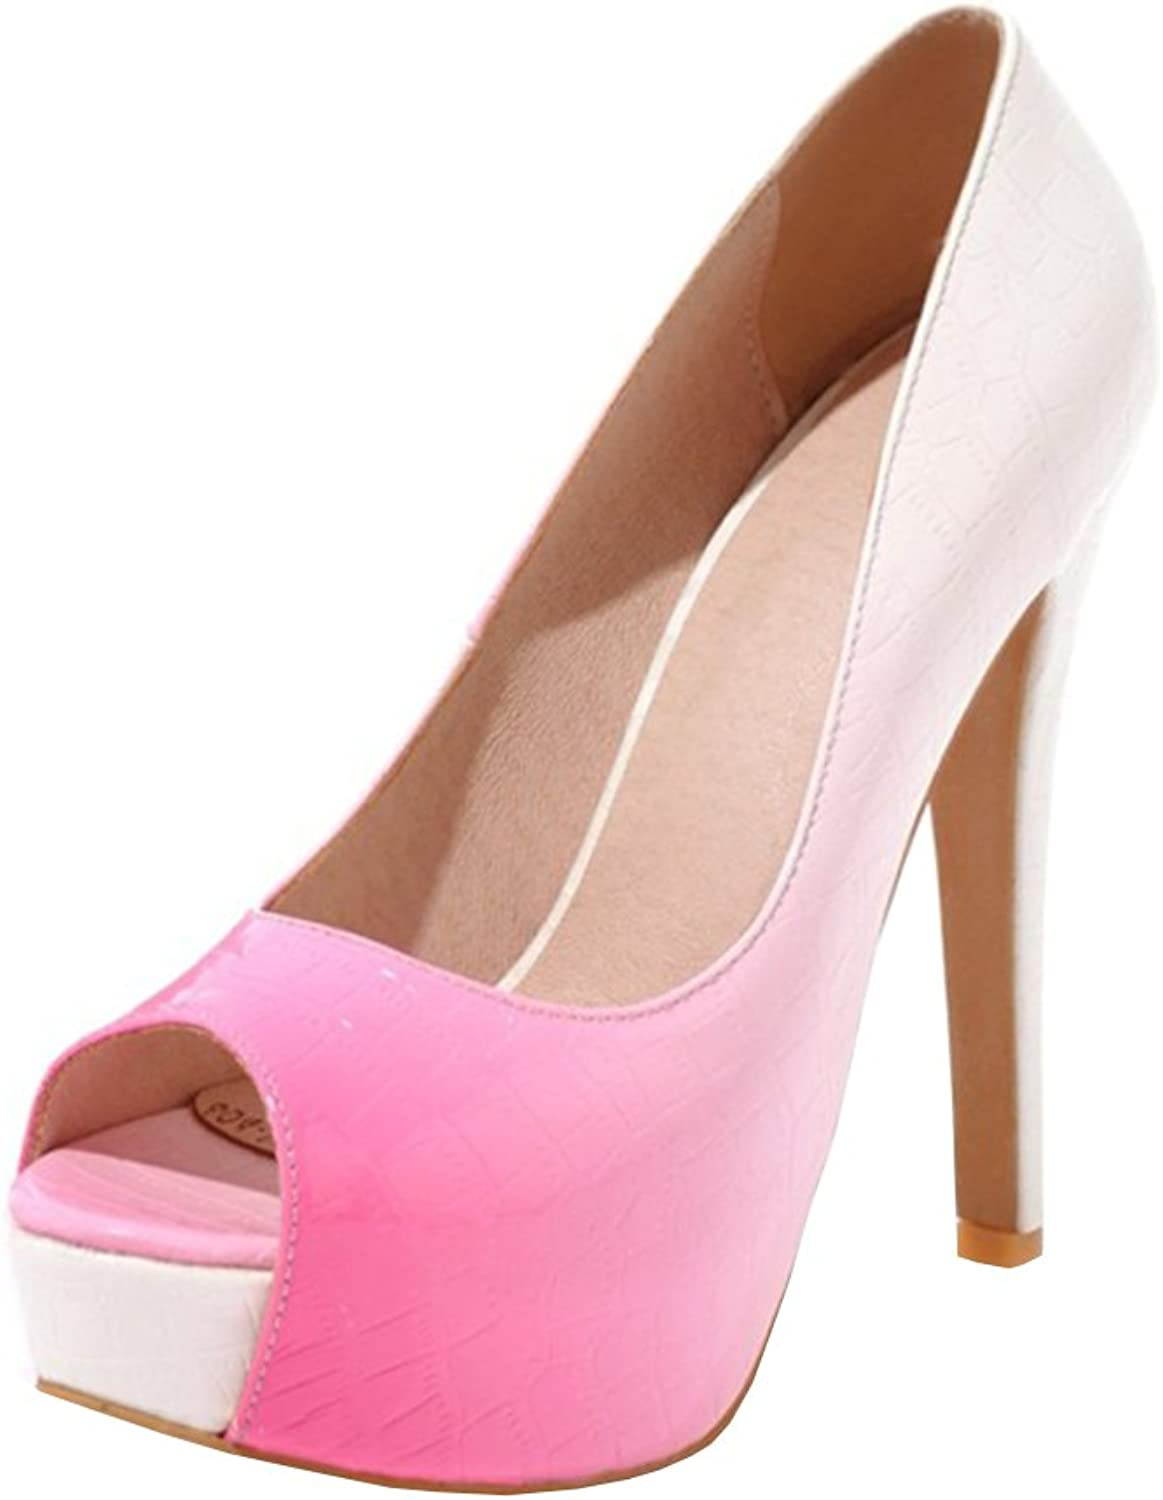 Agodor Women's Platform Extremely High Heels Pumps Peep Toe Stiletto Slip on Evening Party shoes